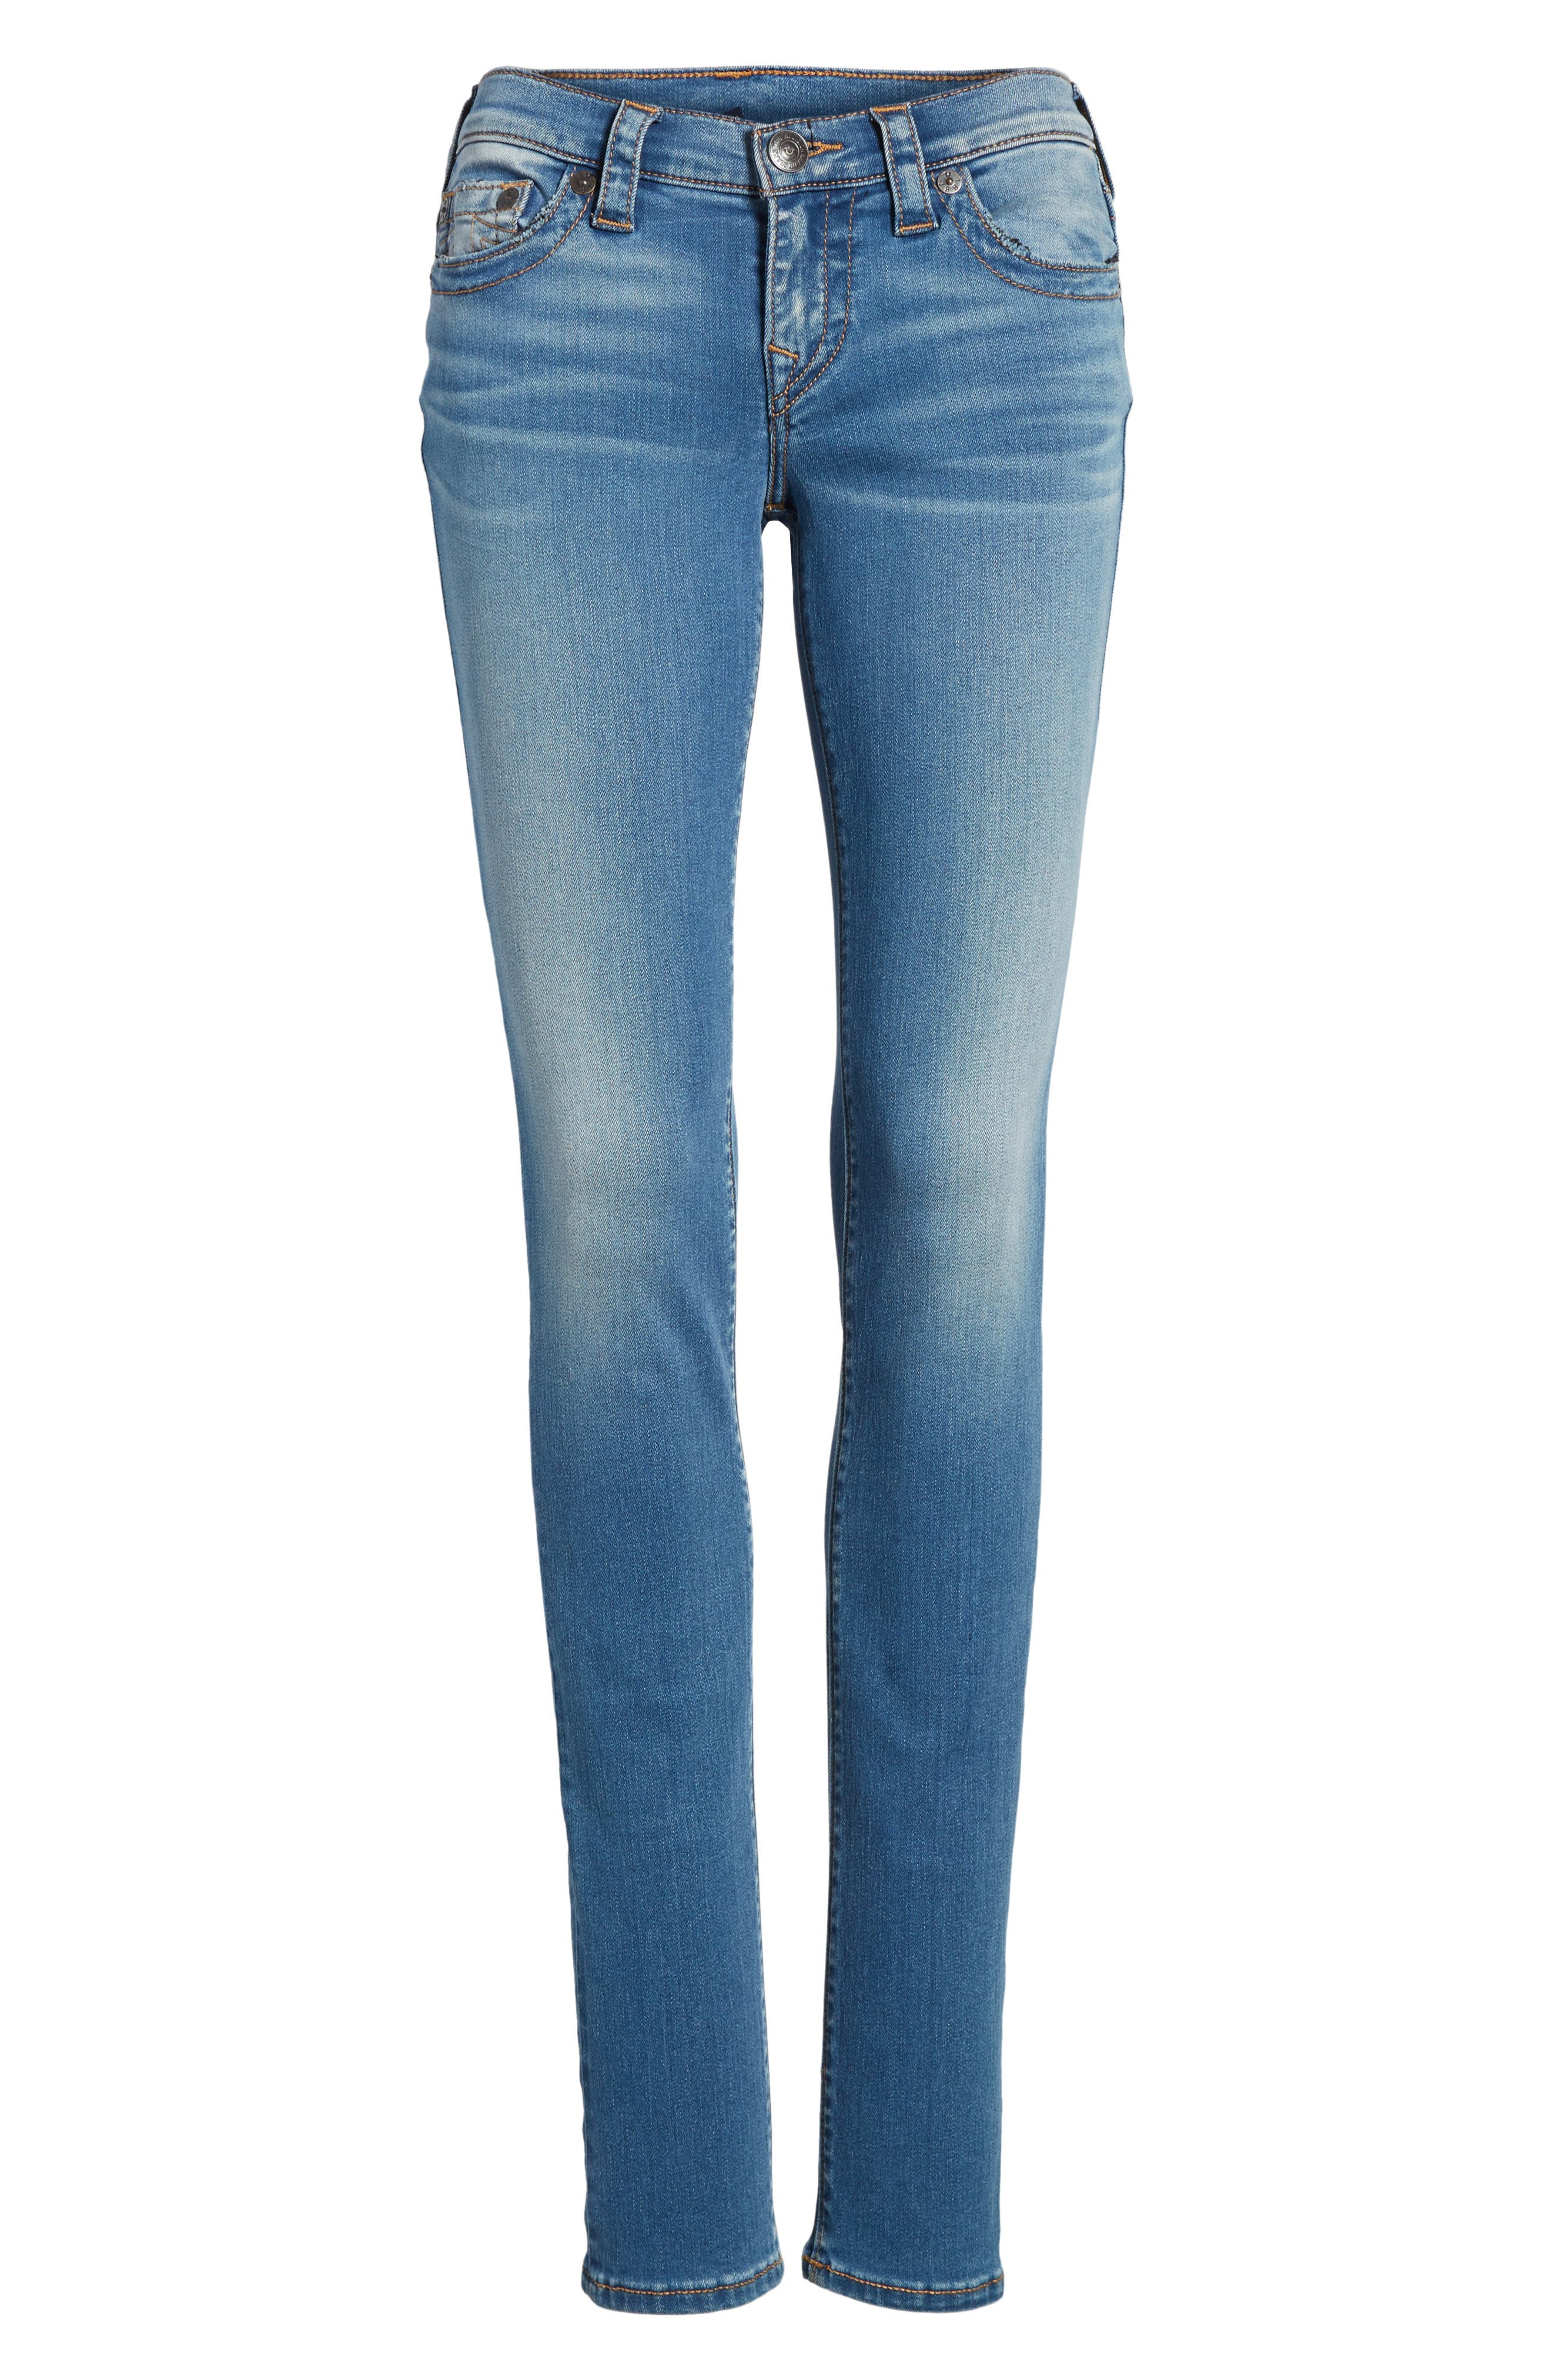 Stella Low Rise Skinny Jeans,                             Alternate thumbnail 6, color,                             Nu Authentic Indigo